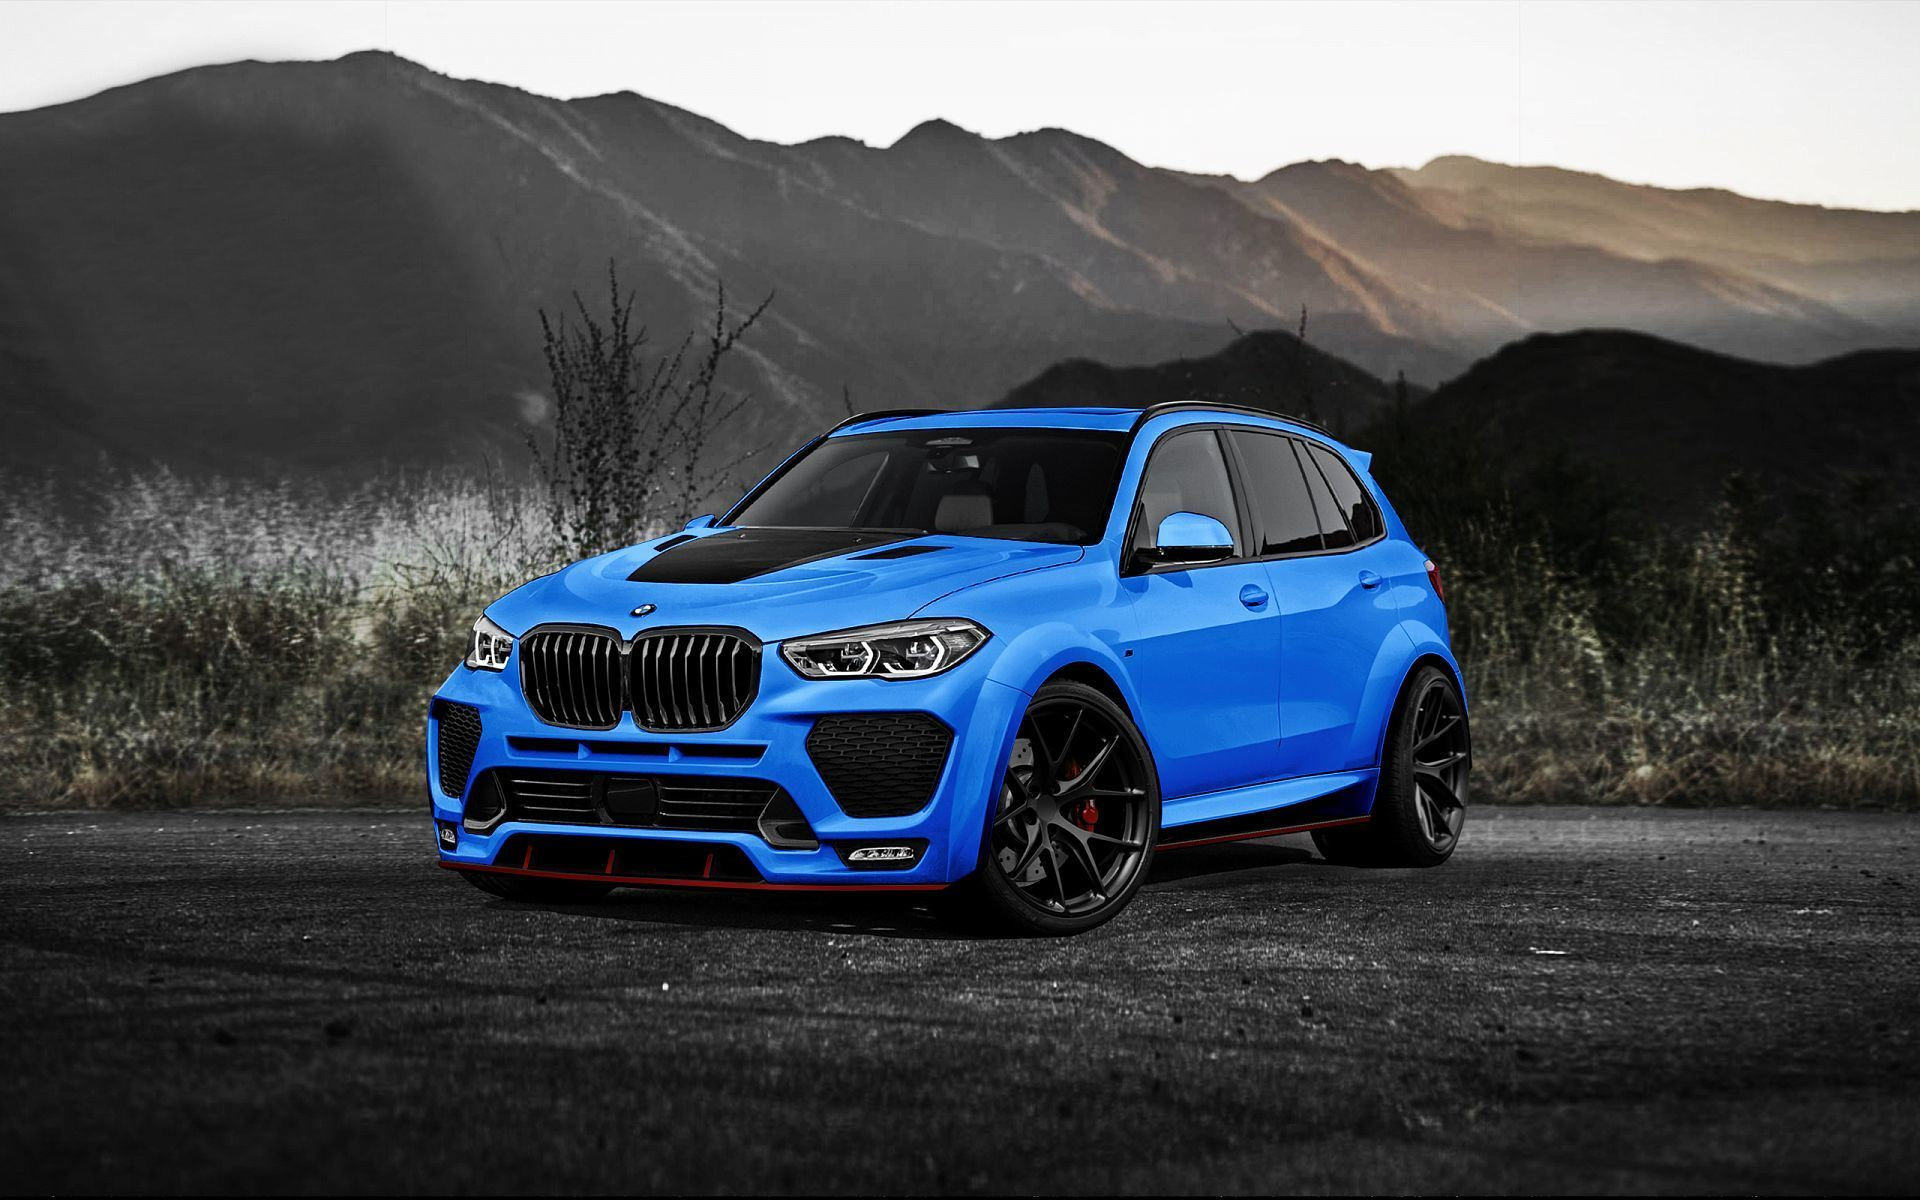 Renegade Design body kit for BMW X5 G05